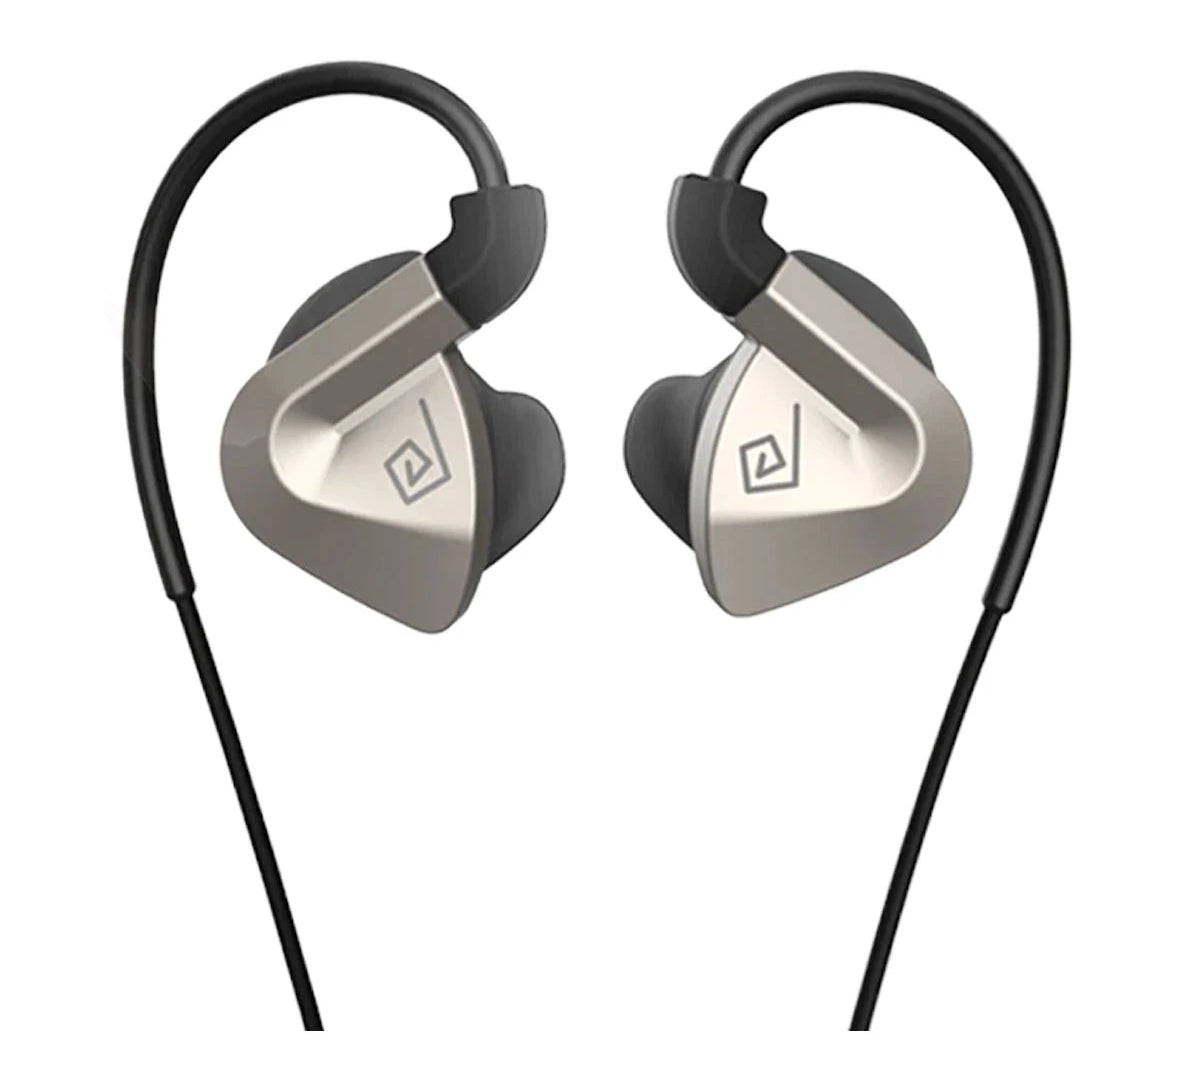 drown earphone renderings